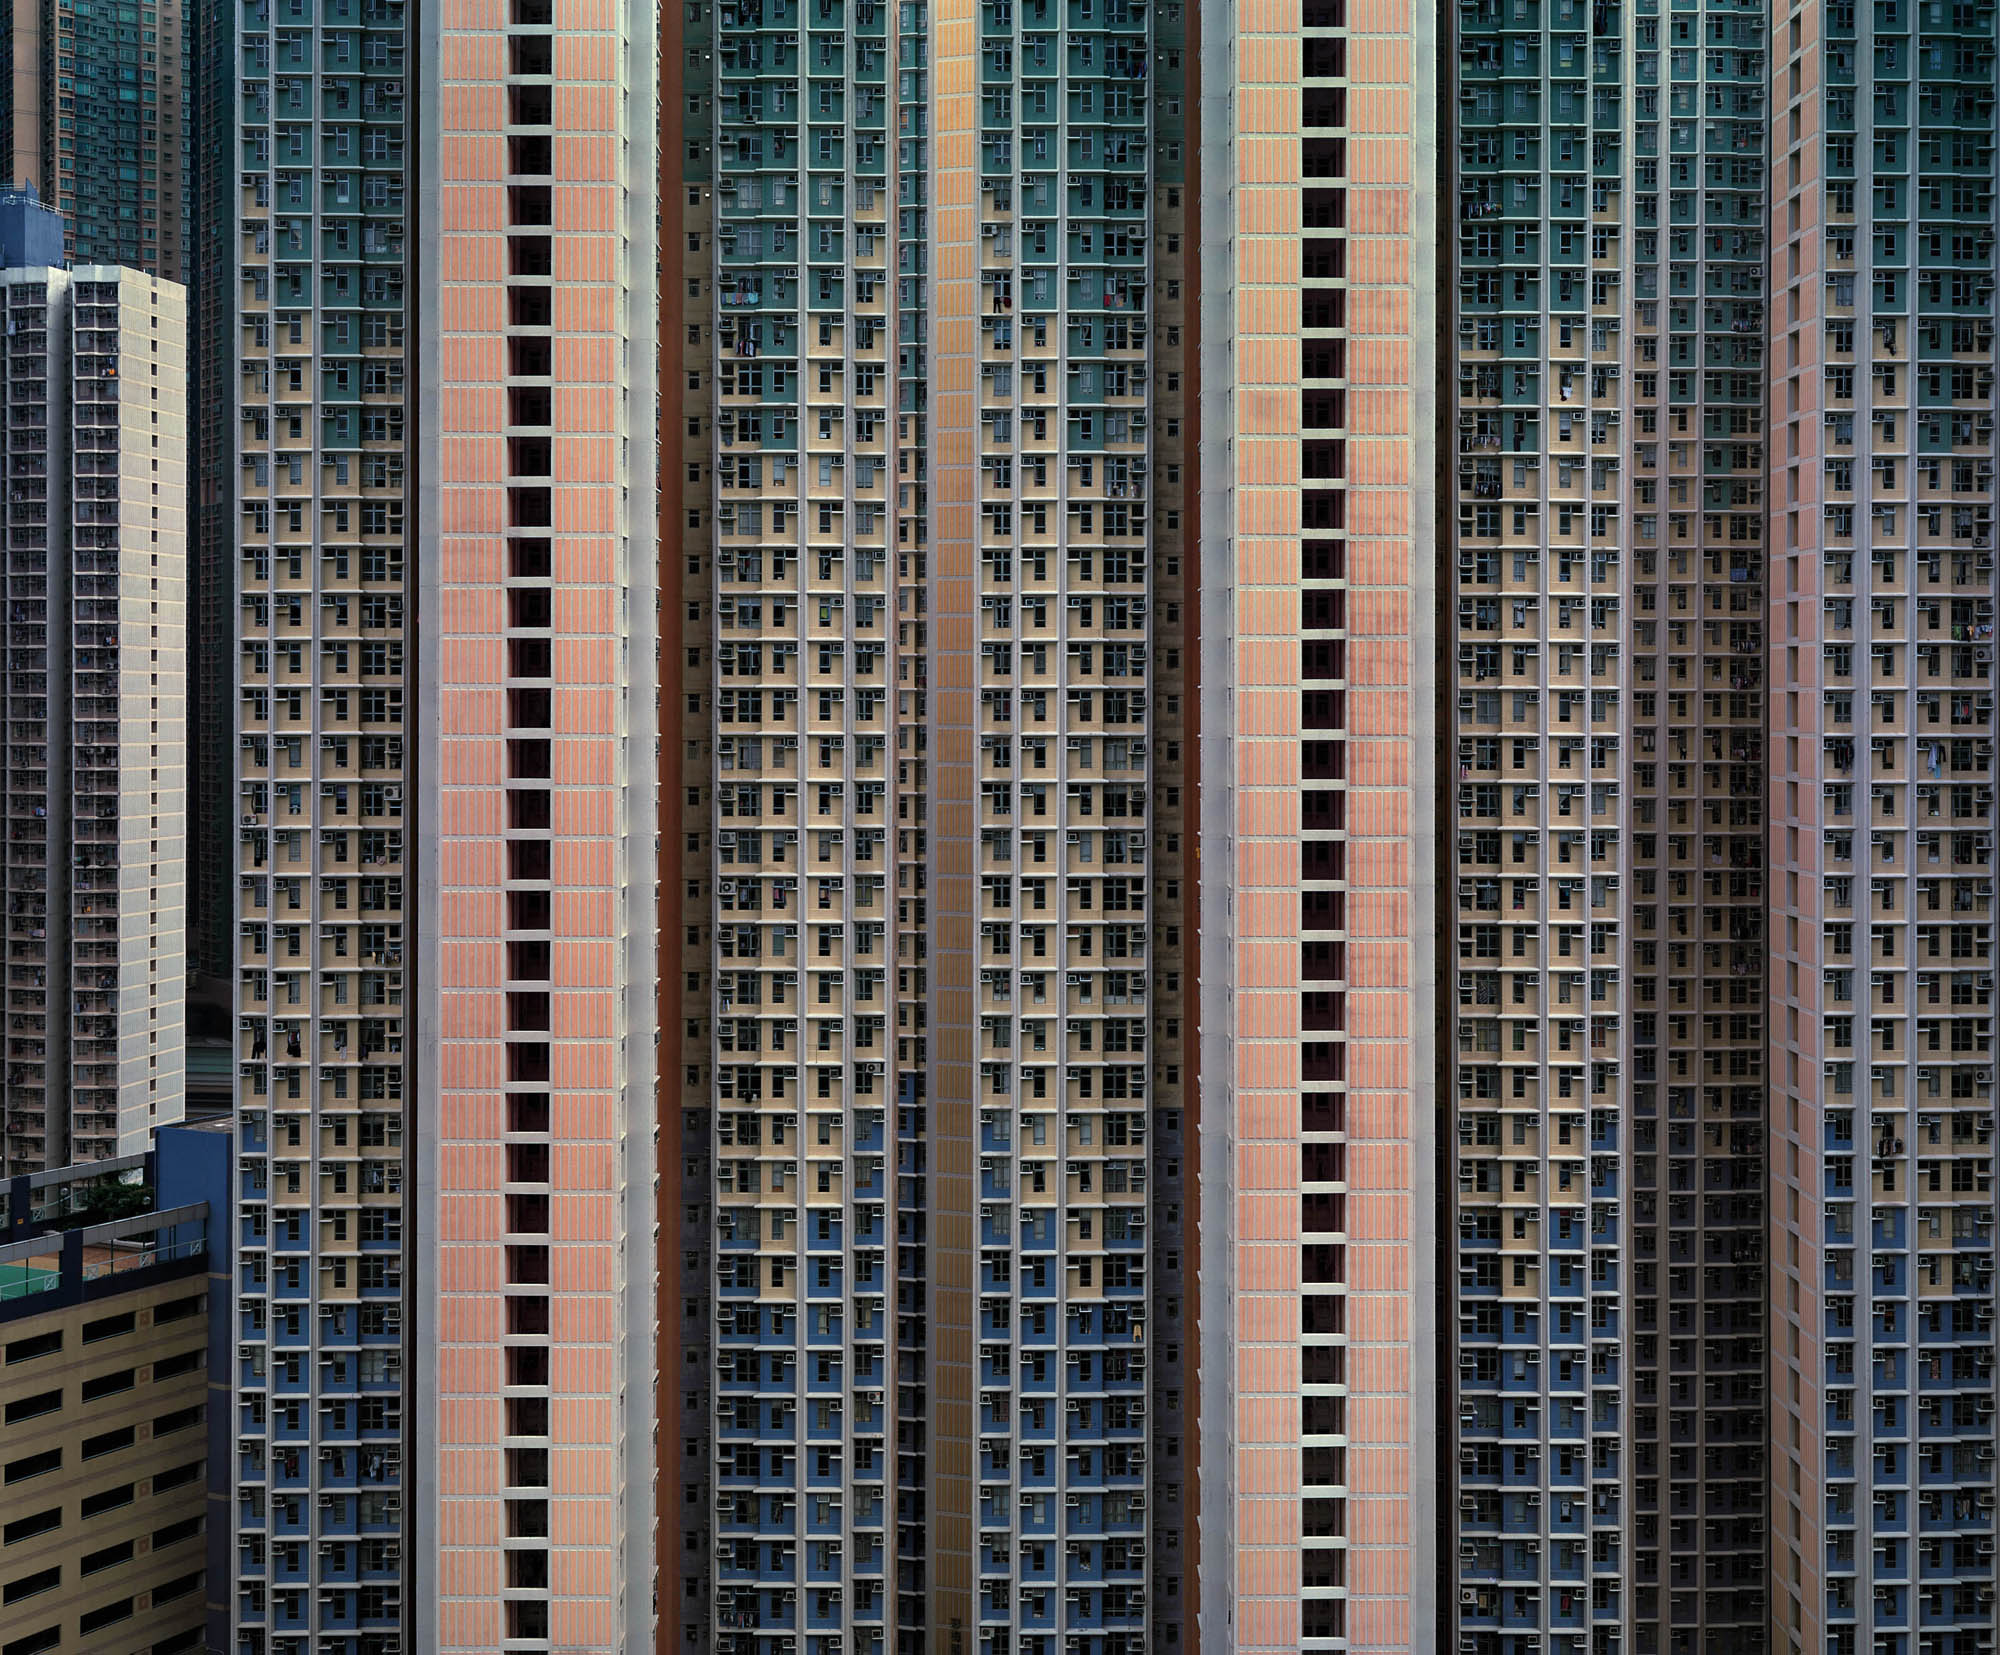 Michael Wolf Series: Architecture of Density 2005-2009, Hong Kong